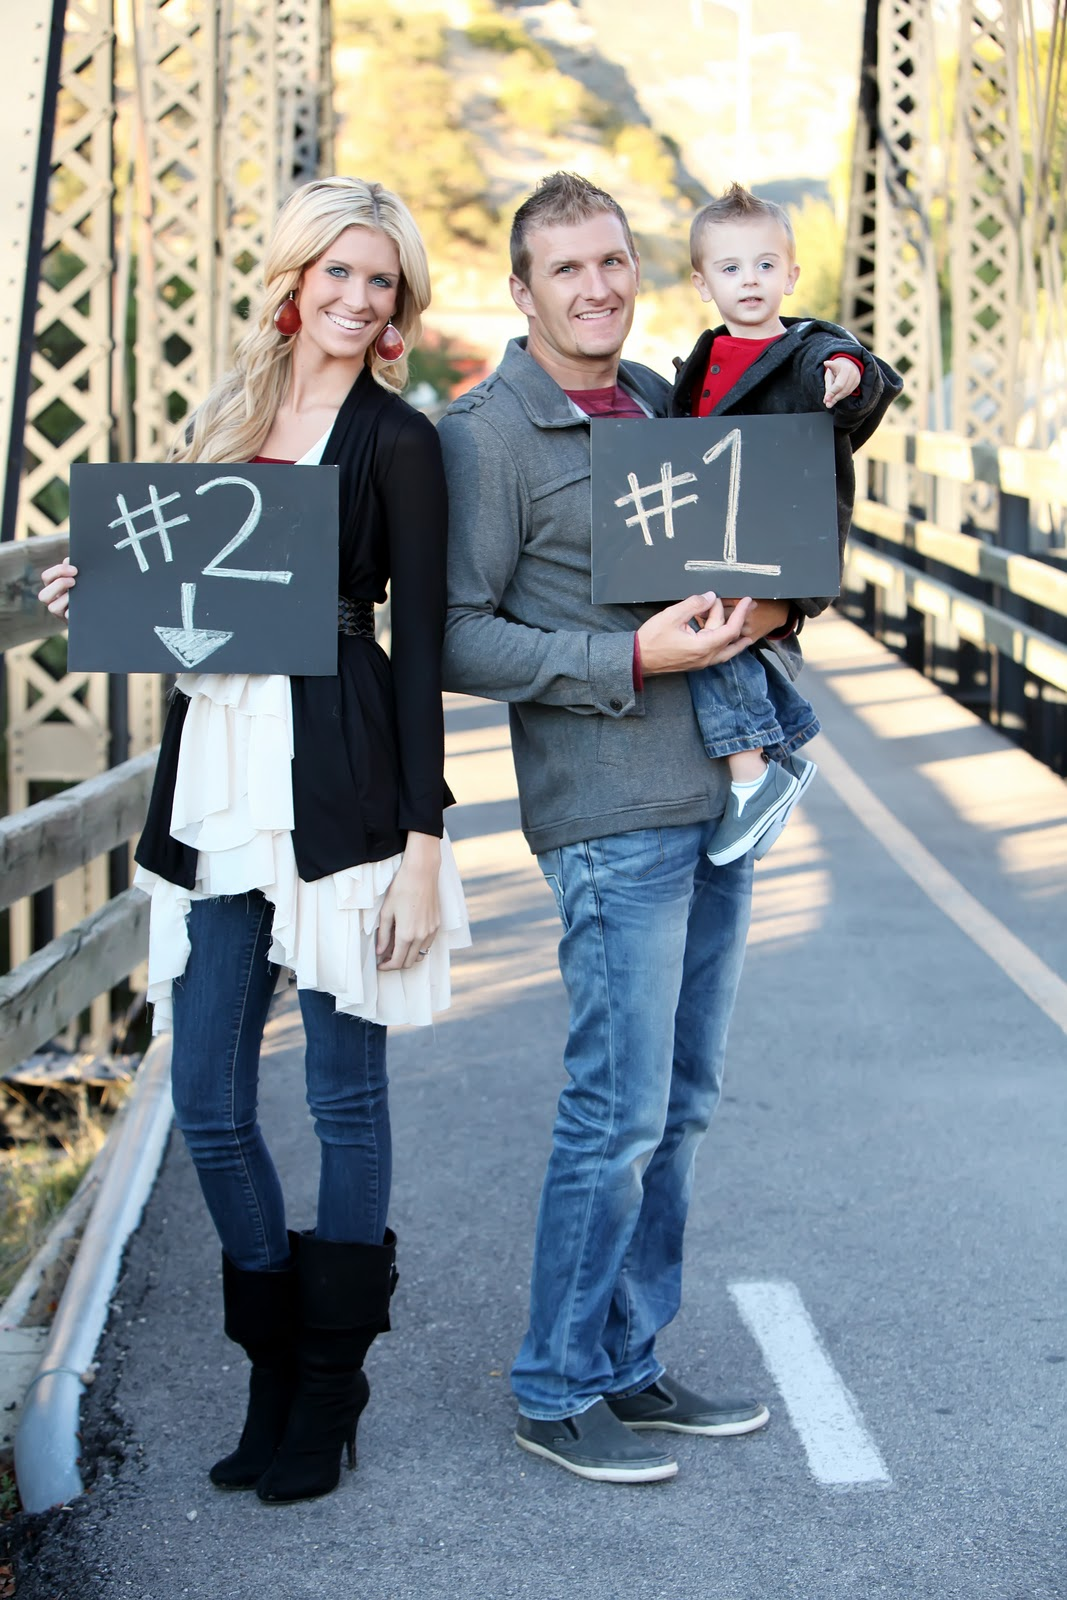 Baby Announcement Photoshoot – Announcing Baby